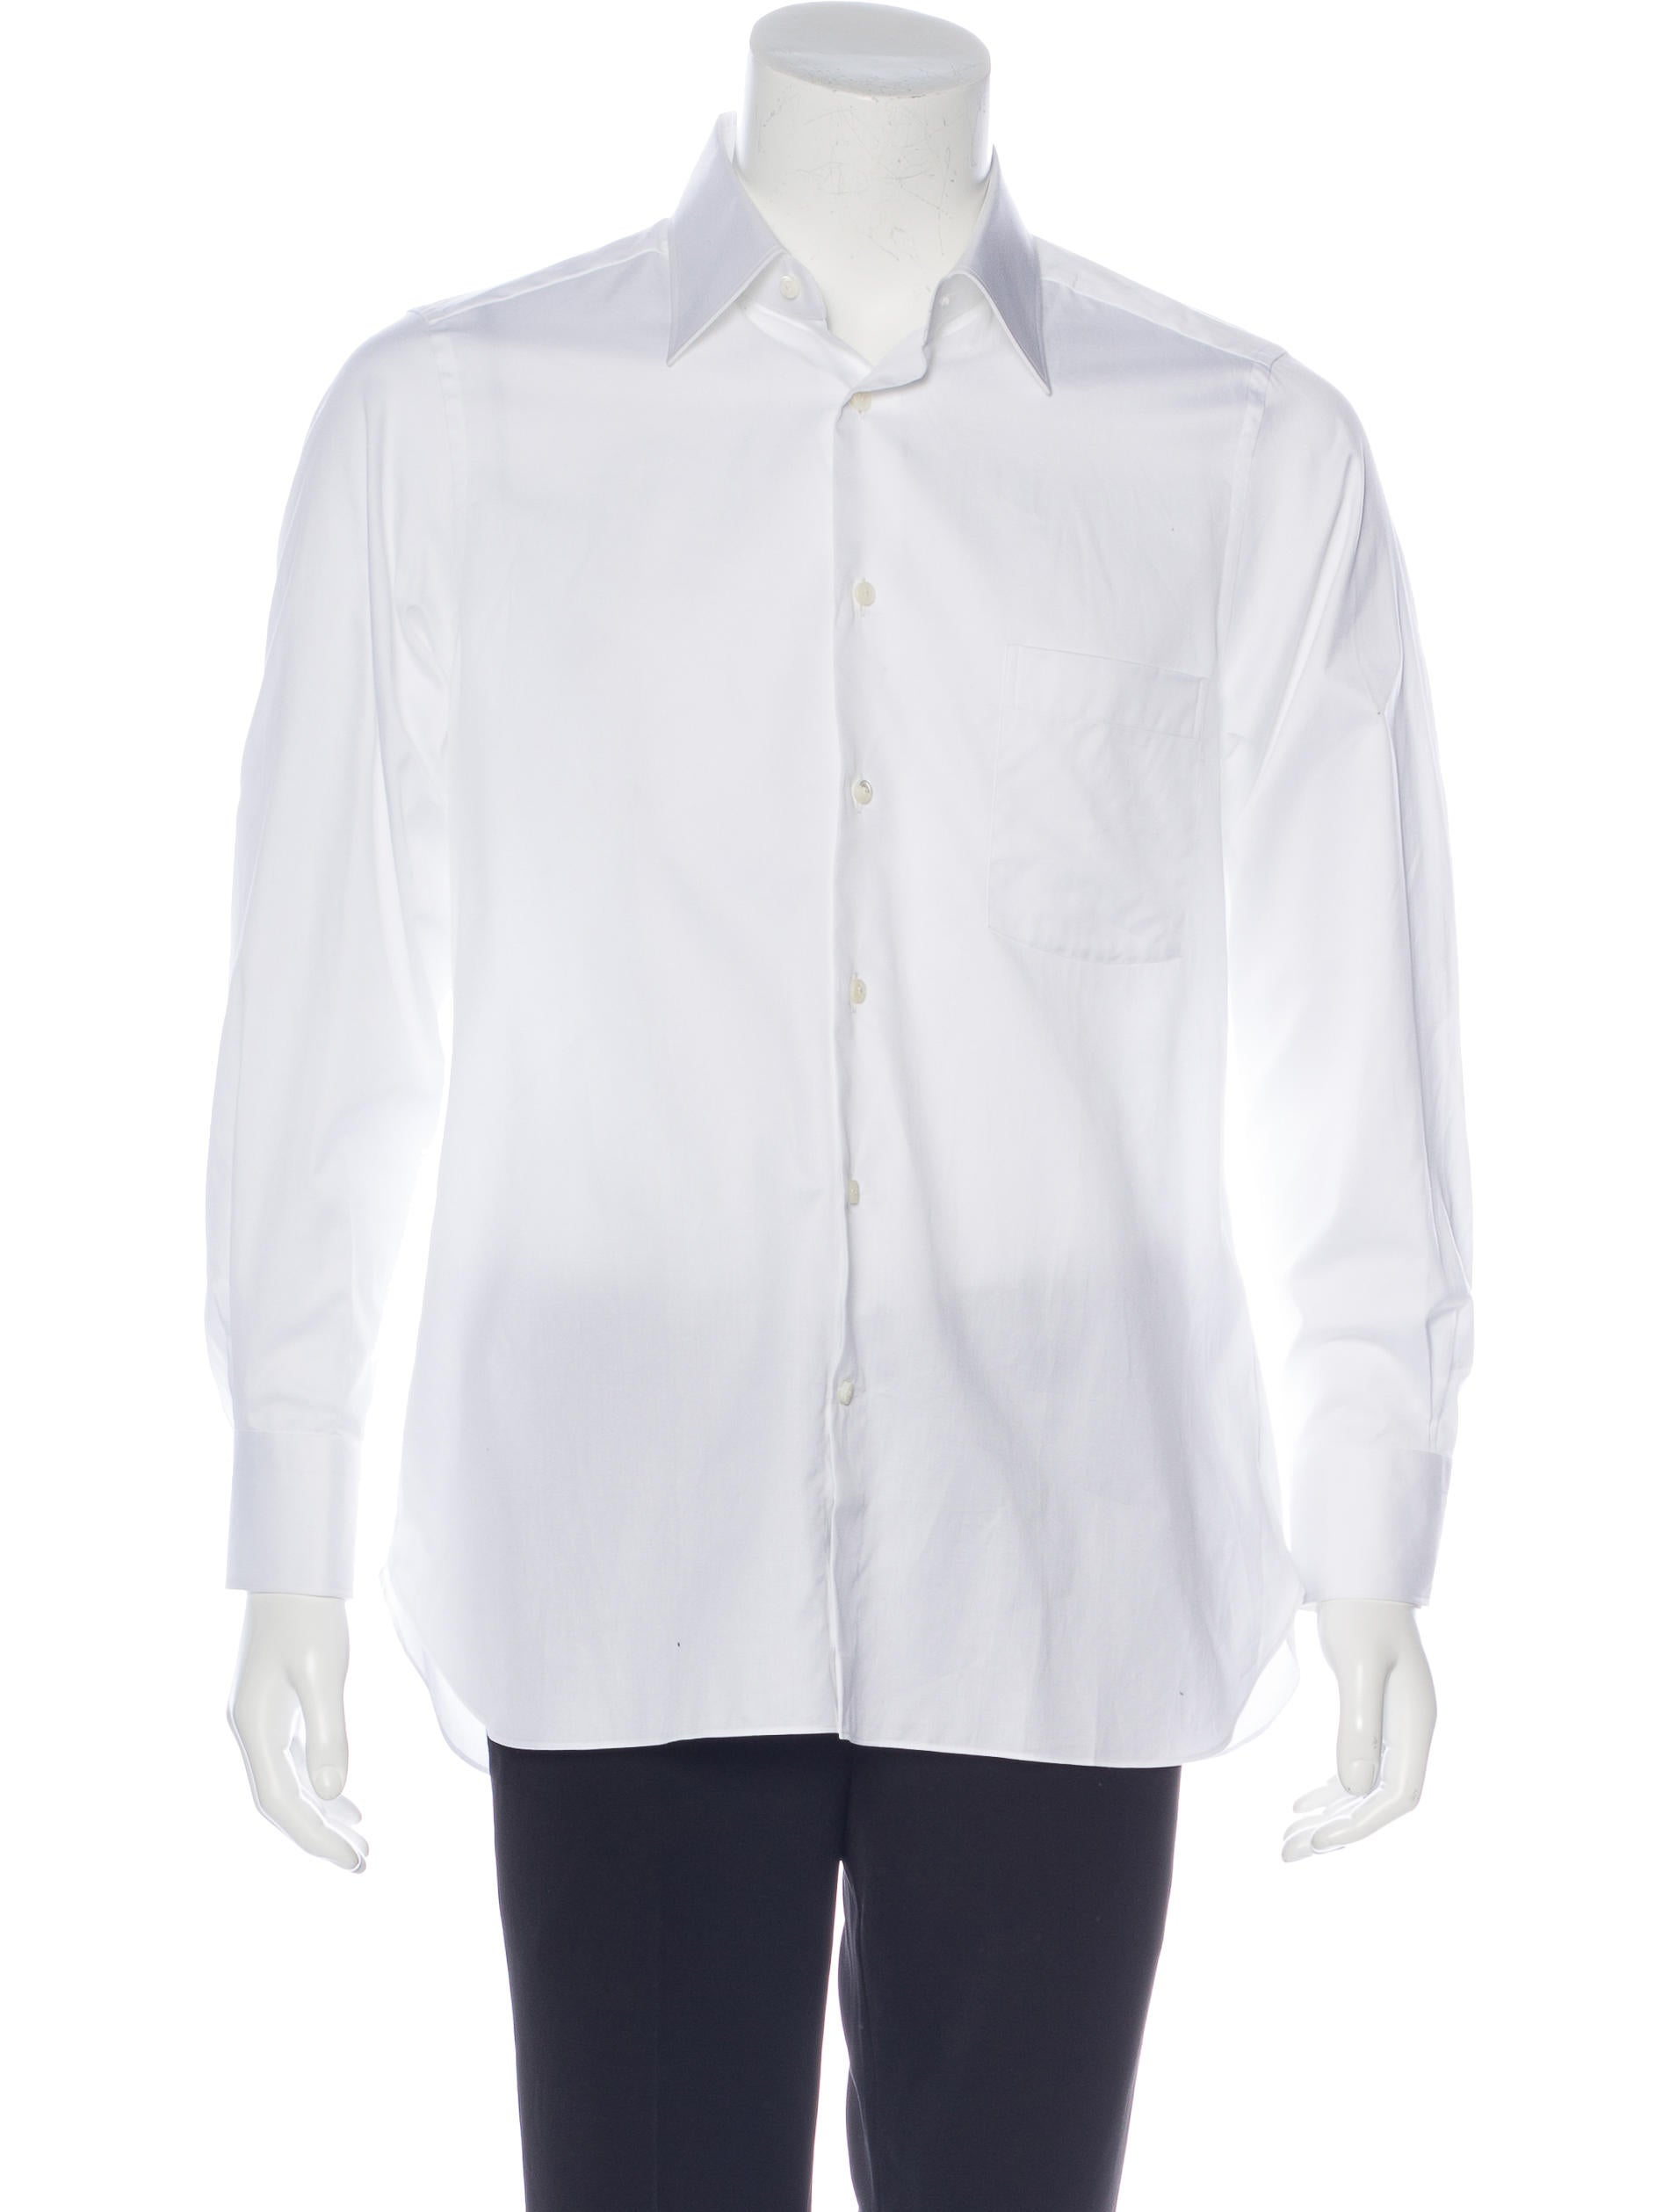 Ermenegildo zegna tailored fit button up shirt w tags for Tailored fit dress shirts